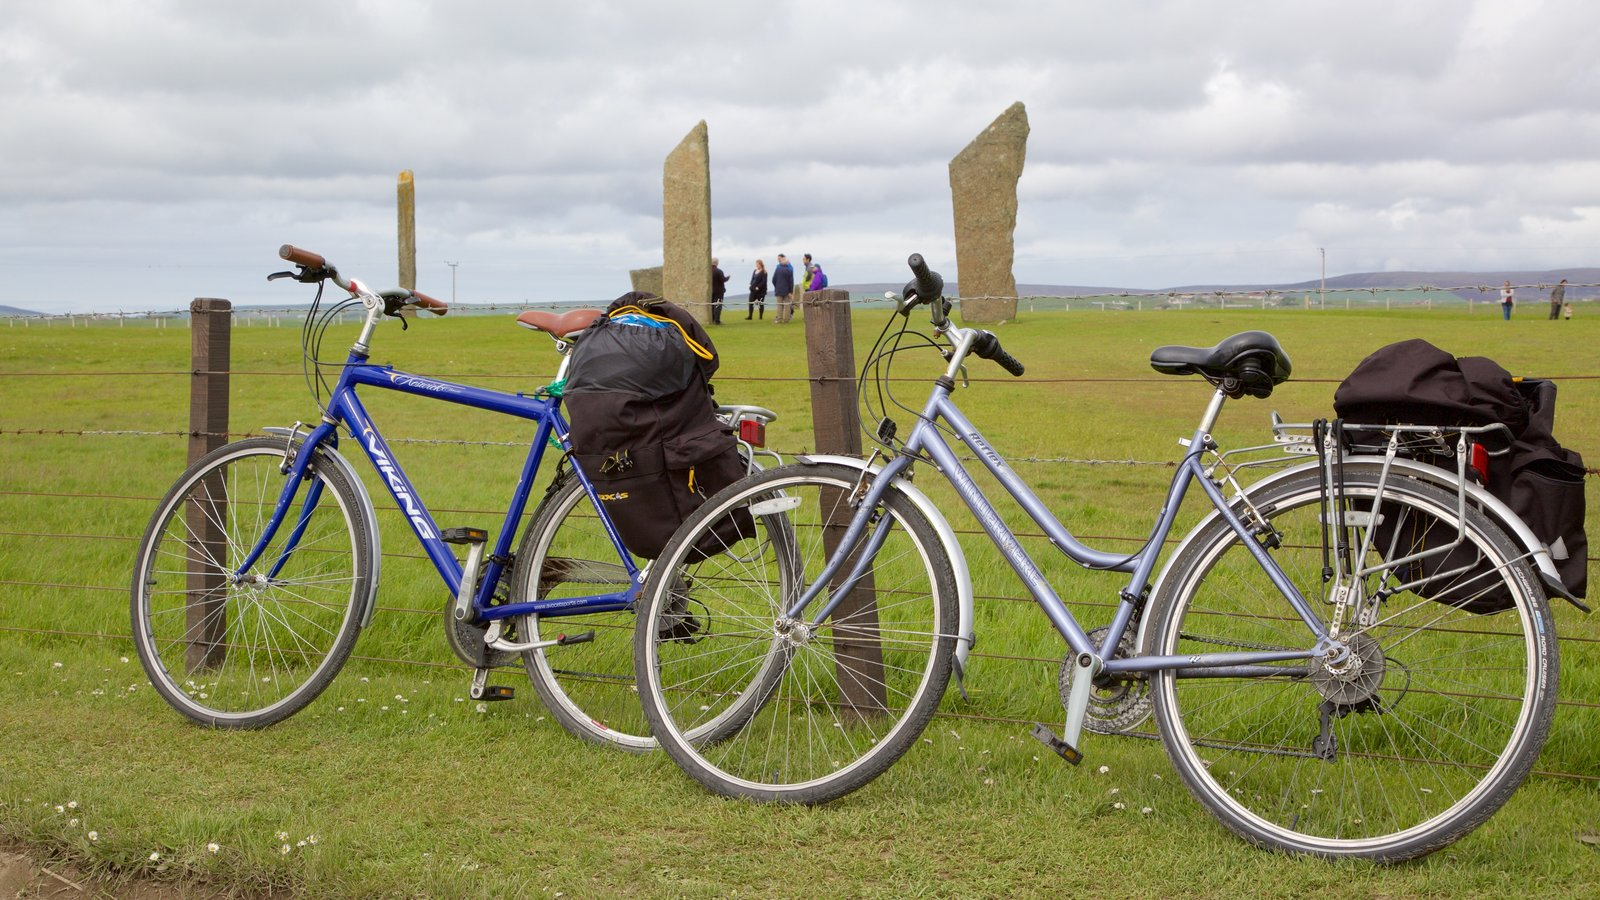 Standing Stones of Stenness featuring a monument, cycling and tranquil scenes